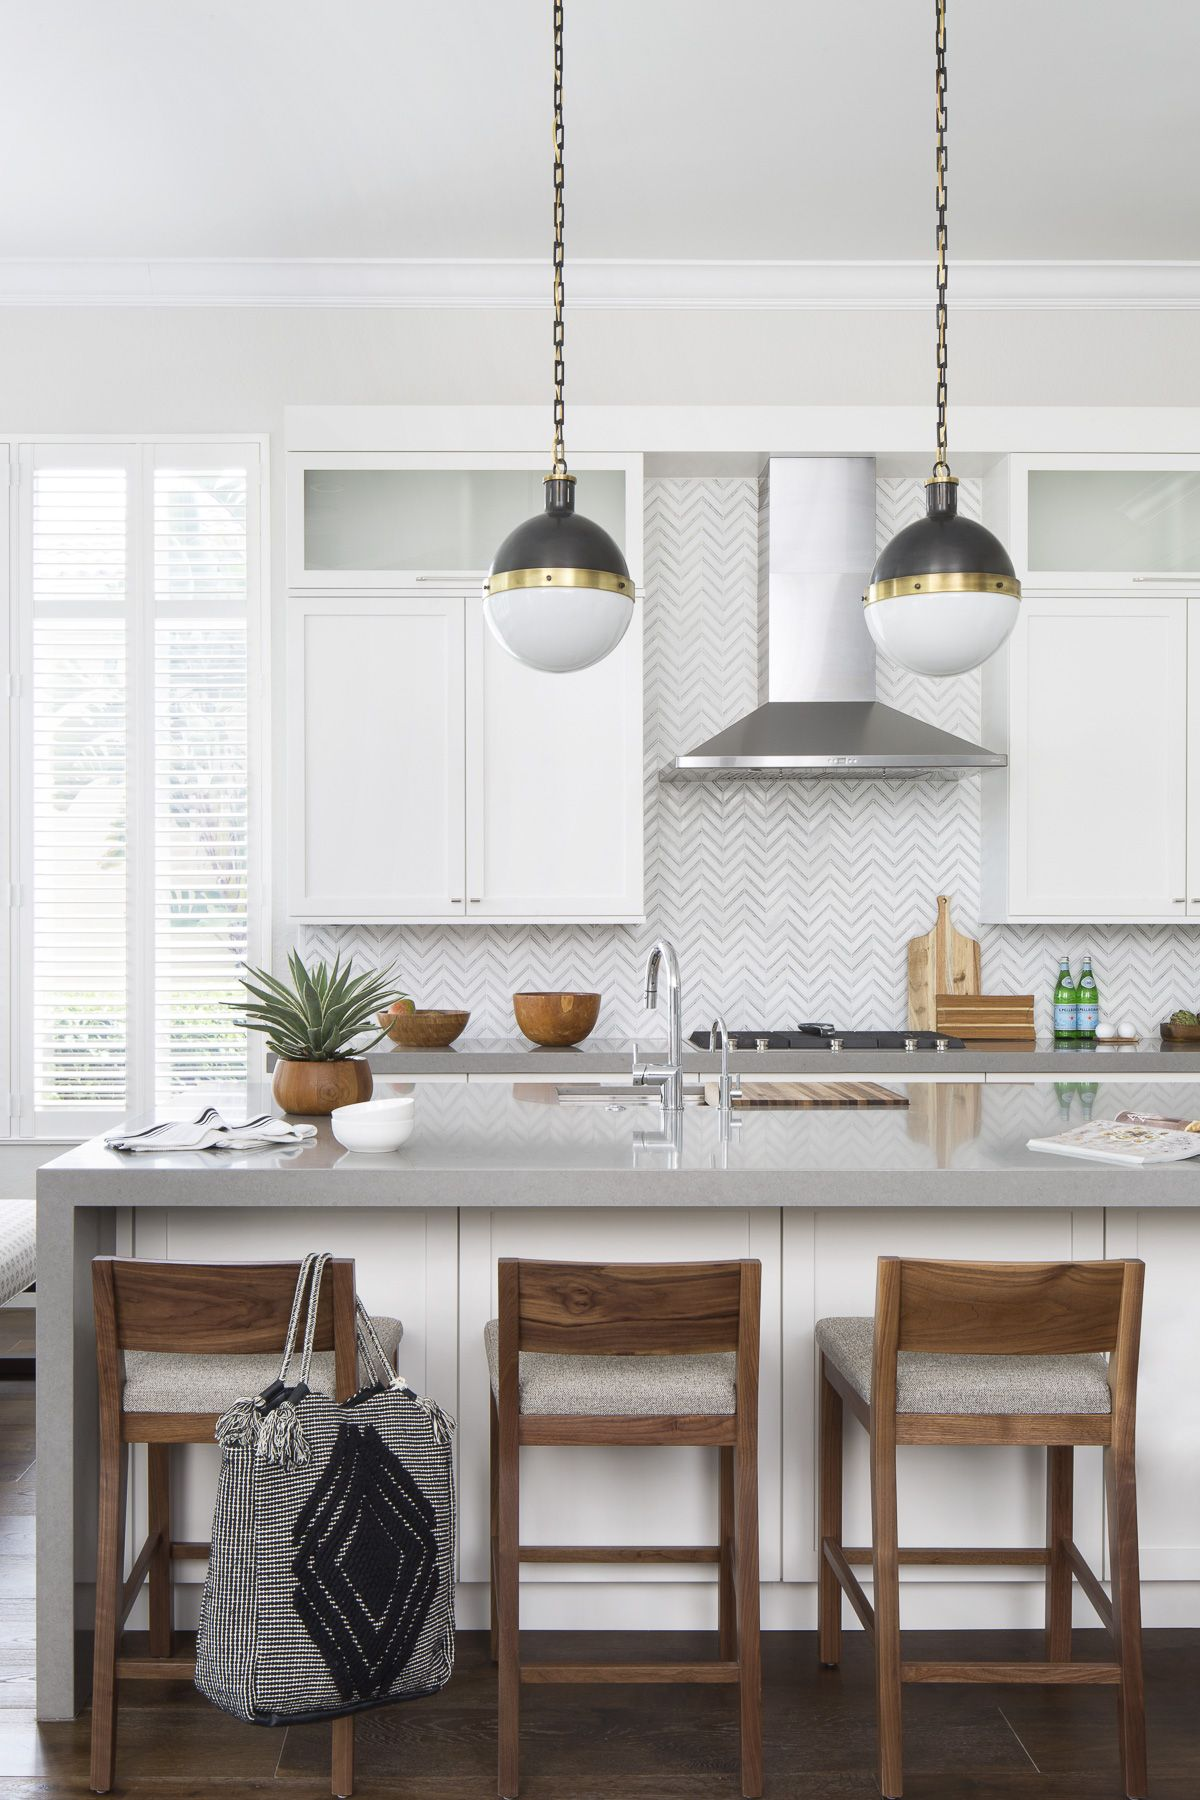 All We Want Are These 9 Kitchens With Gray Countertops   Hunker ...